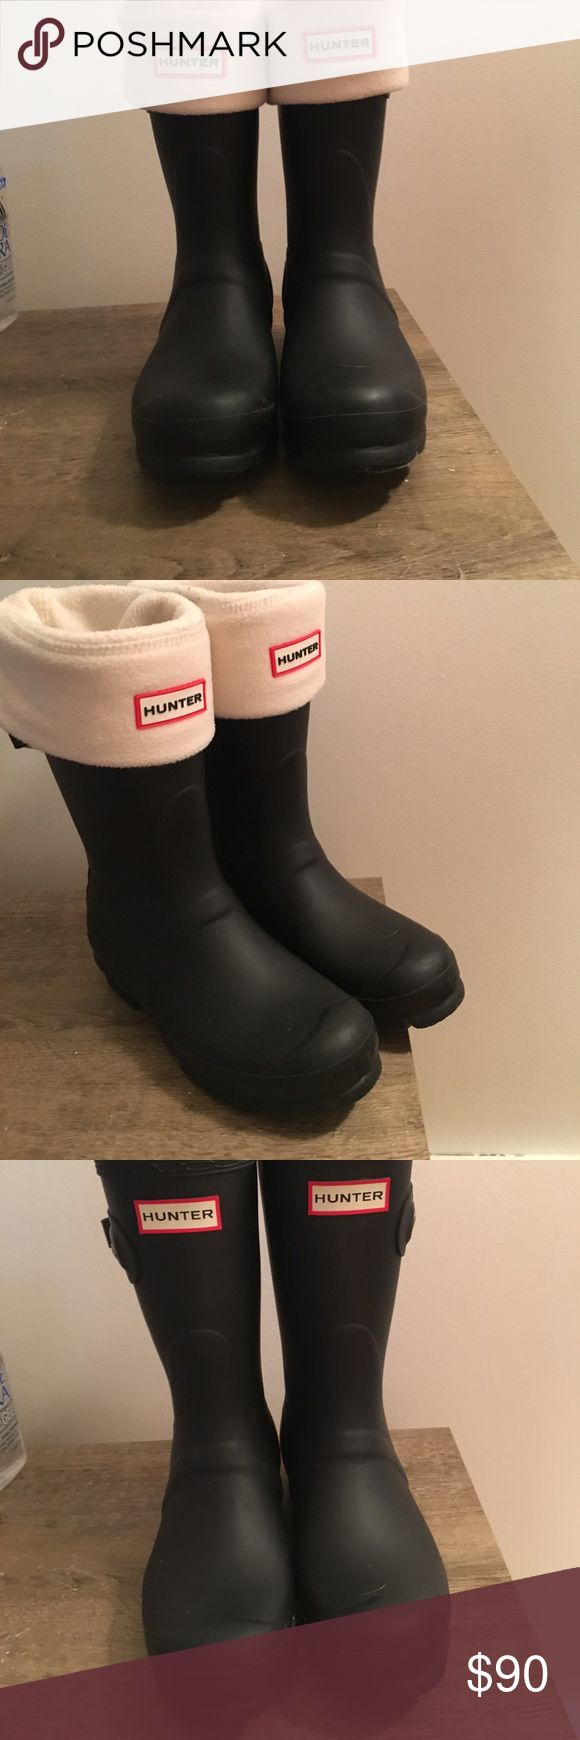 New Women's Hunter Boots Size 6- Plus boot covers! Matte Black hunter boots. Never been worn, doesn't have box or tags. Hunter Boots Shoes Winter & Rain Boots